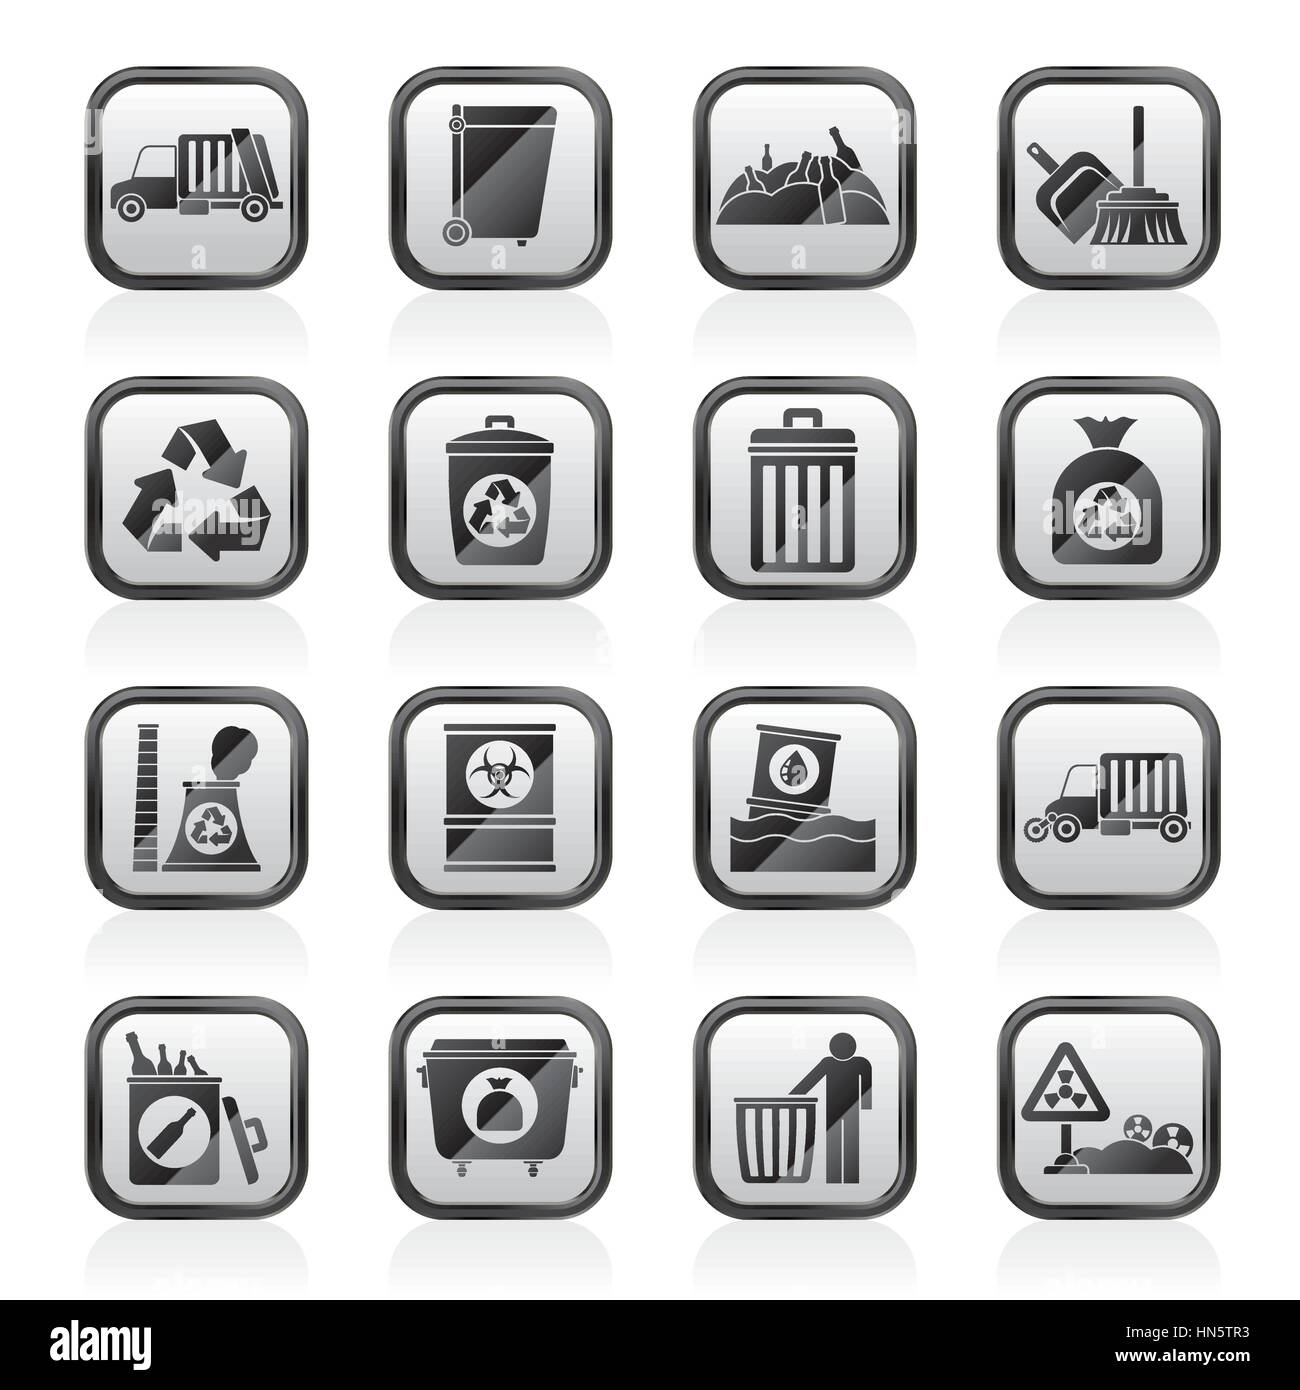 Garbage, cleaning and rubbish icons - Stock Vector